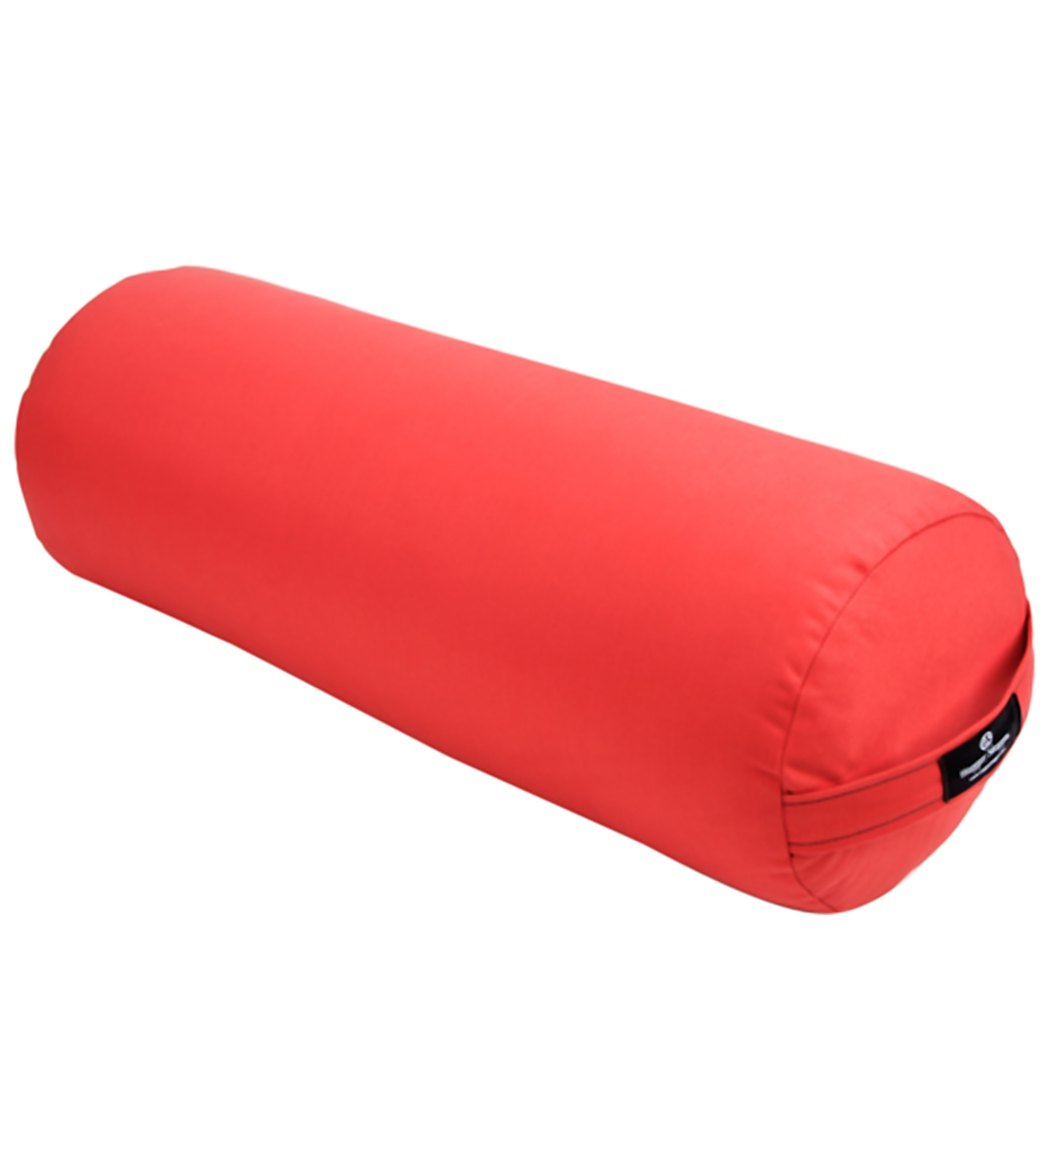 Get the additional support and comfort you want with this Hugger Mugger(TM) Round Yoga Bolster. Ideal for restorative yoga, but great for all types. Removable cover with a convenient handle. Oval shape with a flat surface for comfort. Dimensions: 9\